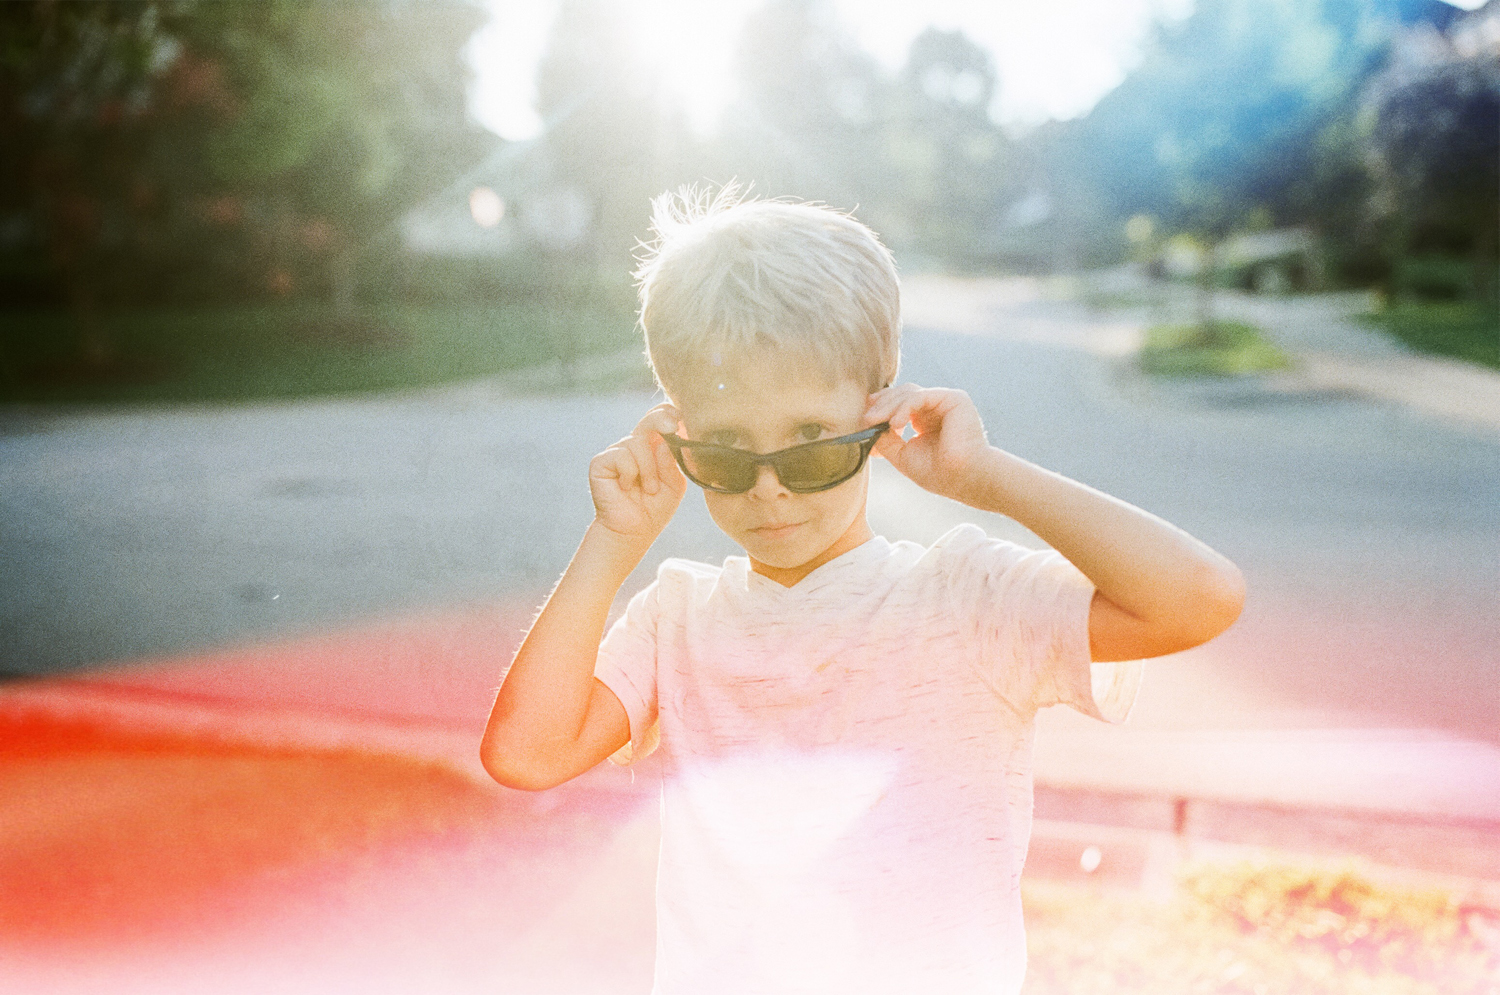 raleigh-film-photographer-lifestyle-family-photography-36